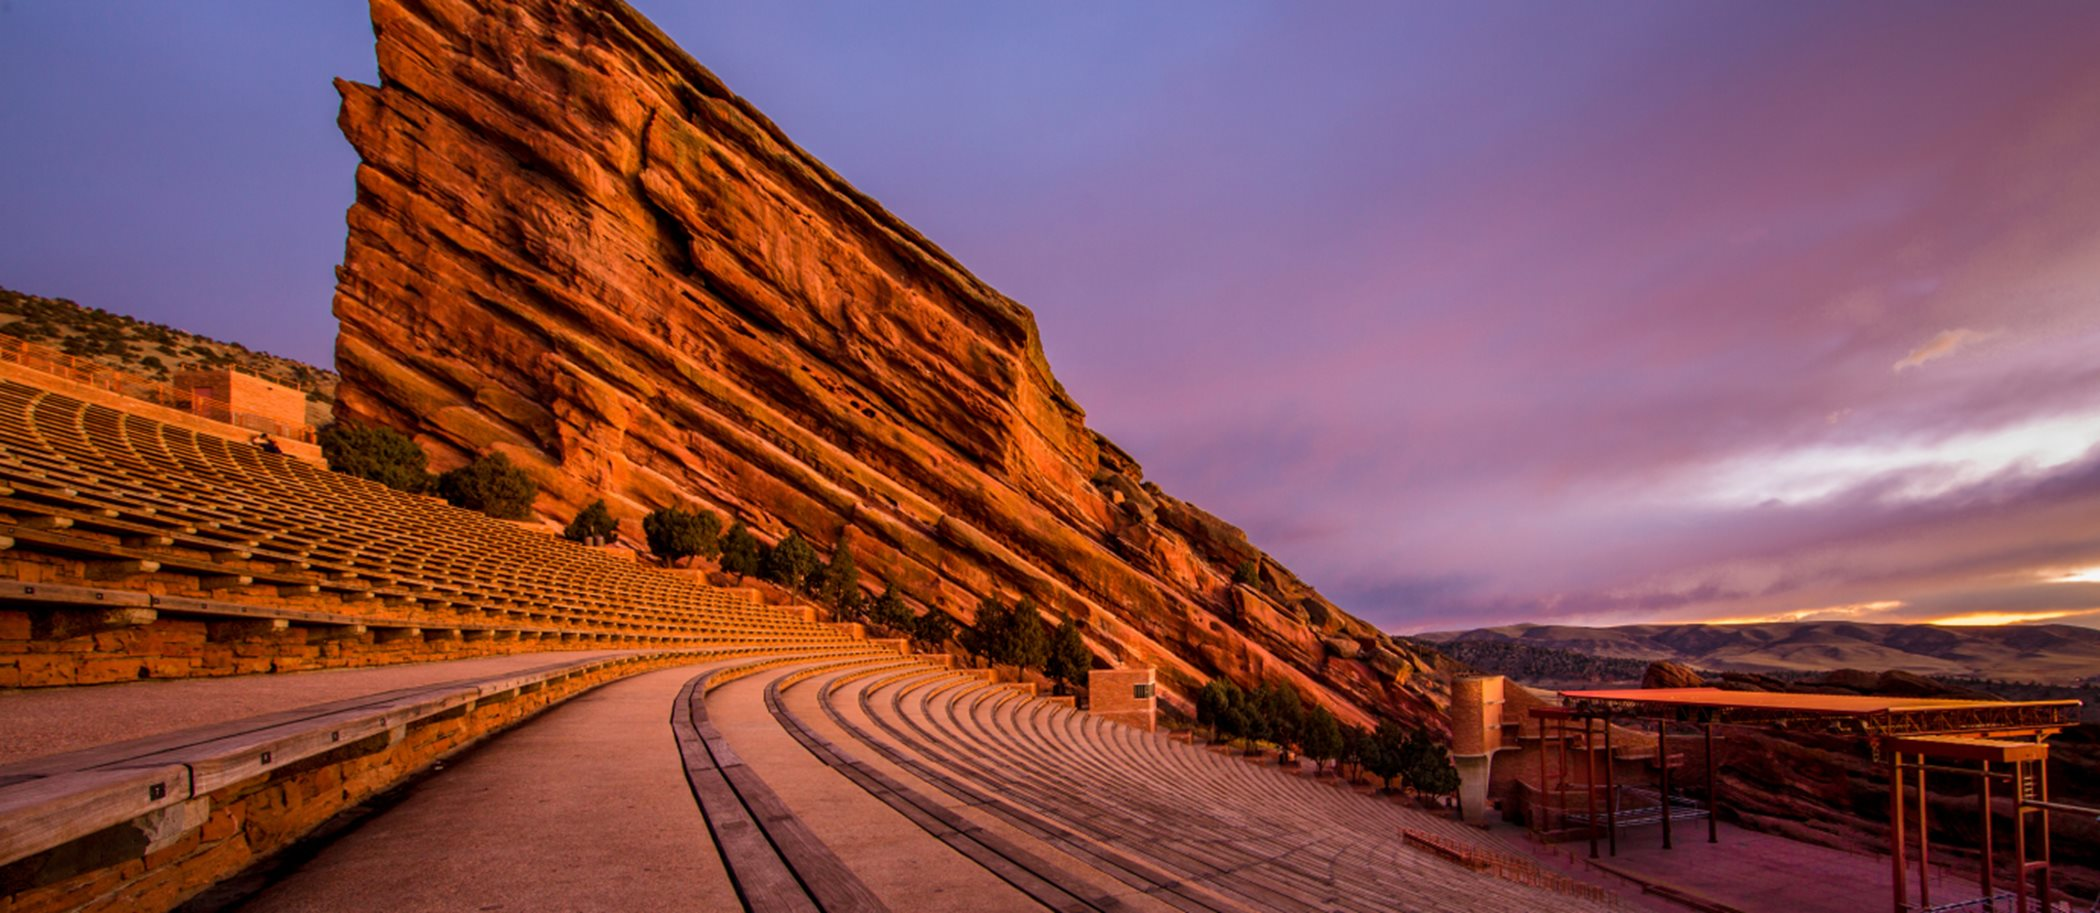 Red Rocks Ranch Amphitheater